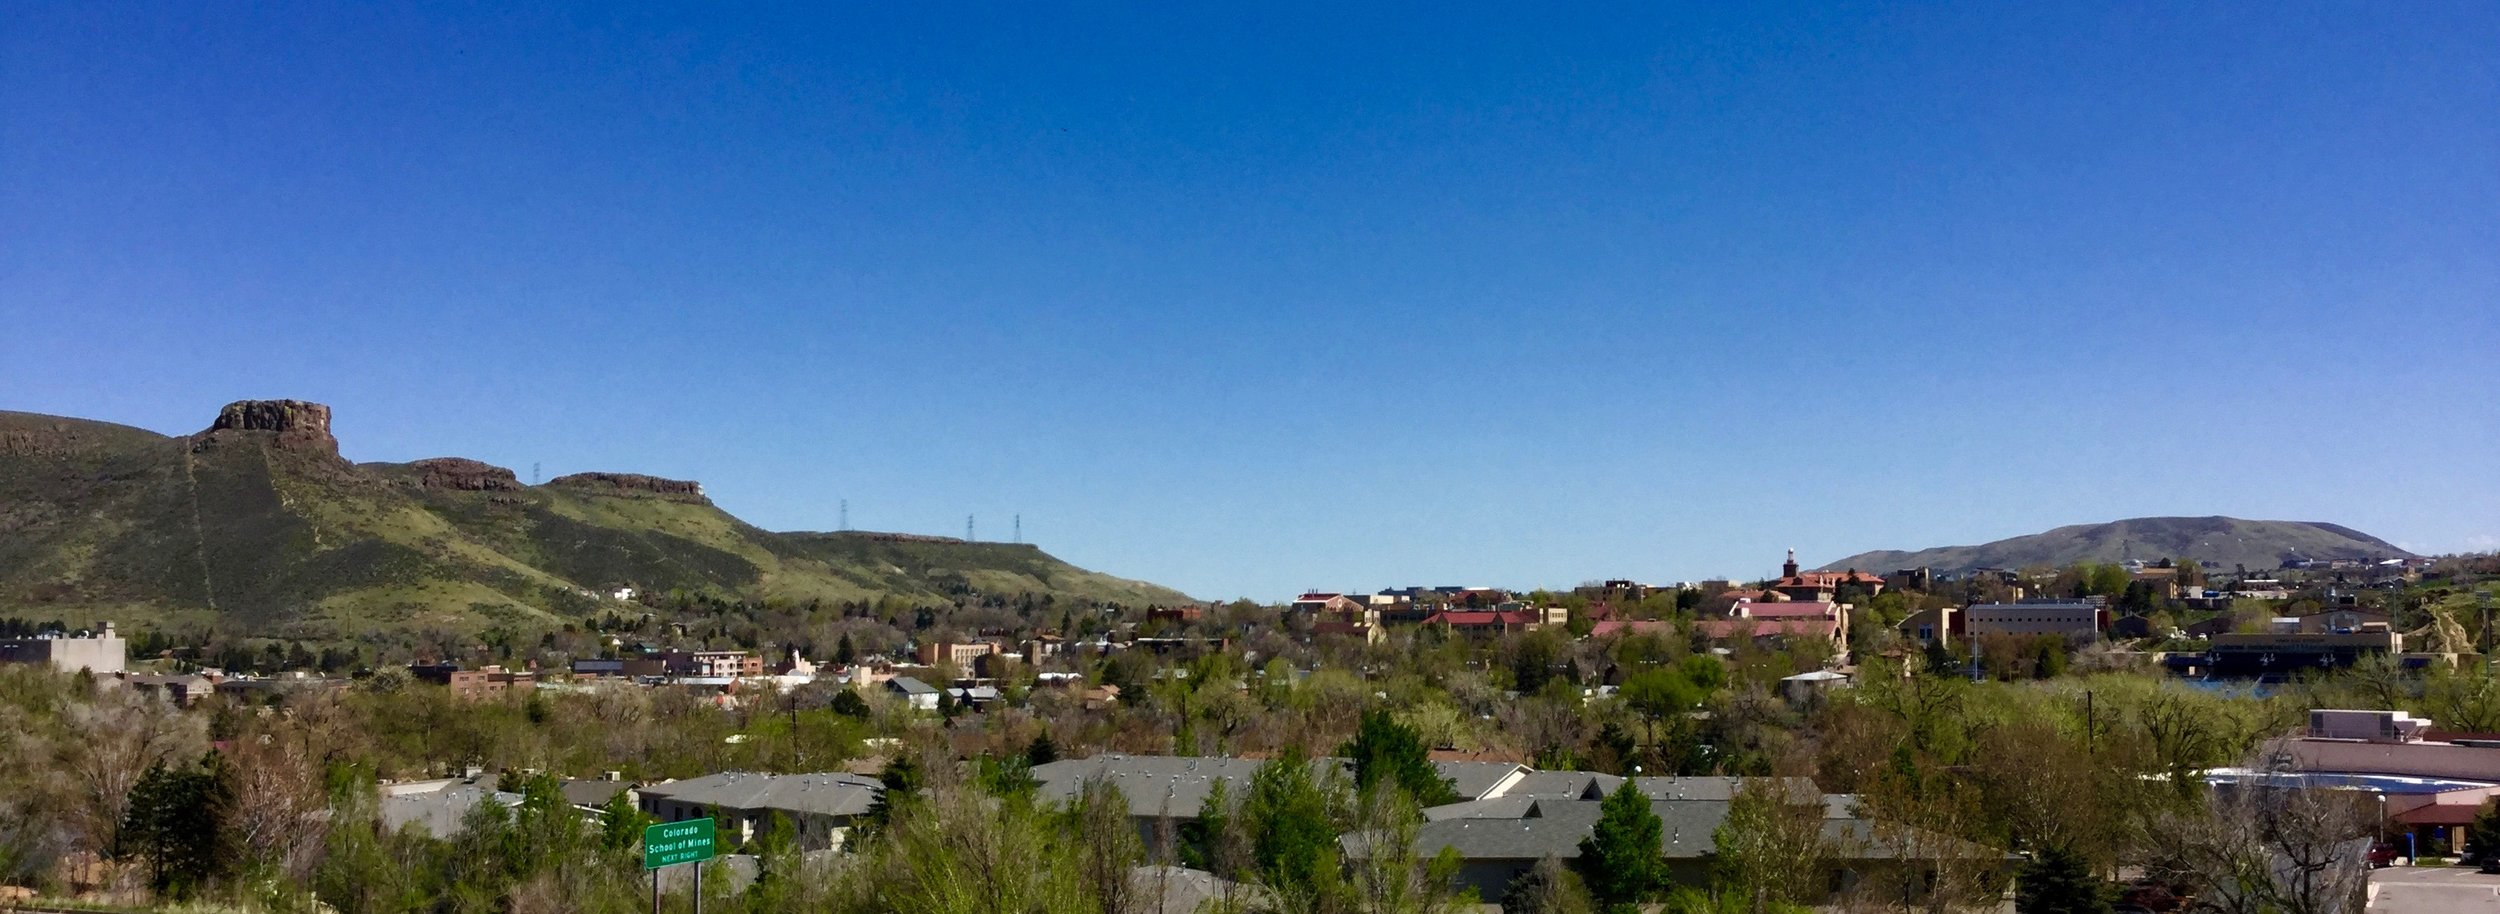 Canyon View Court is one of Golden, Colorado's smaller Townhome communities located just north of downtown.